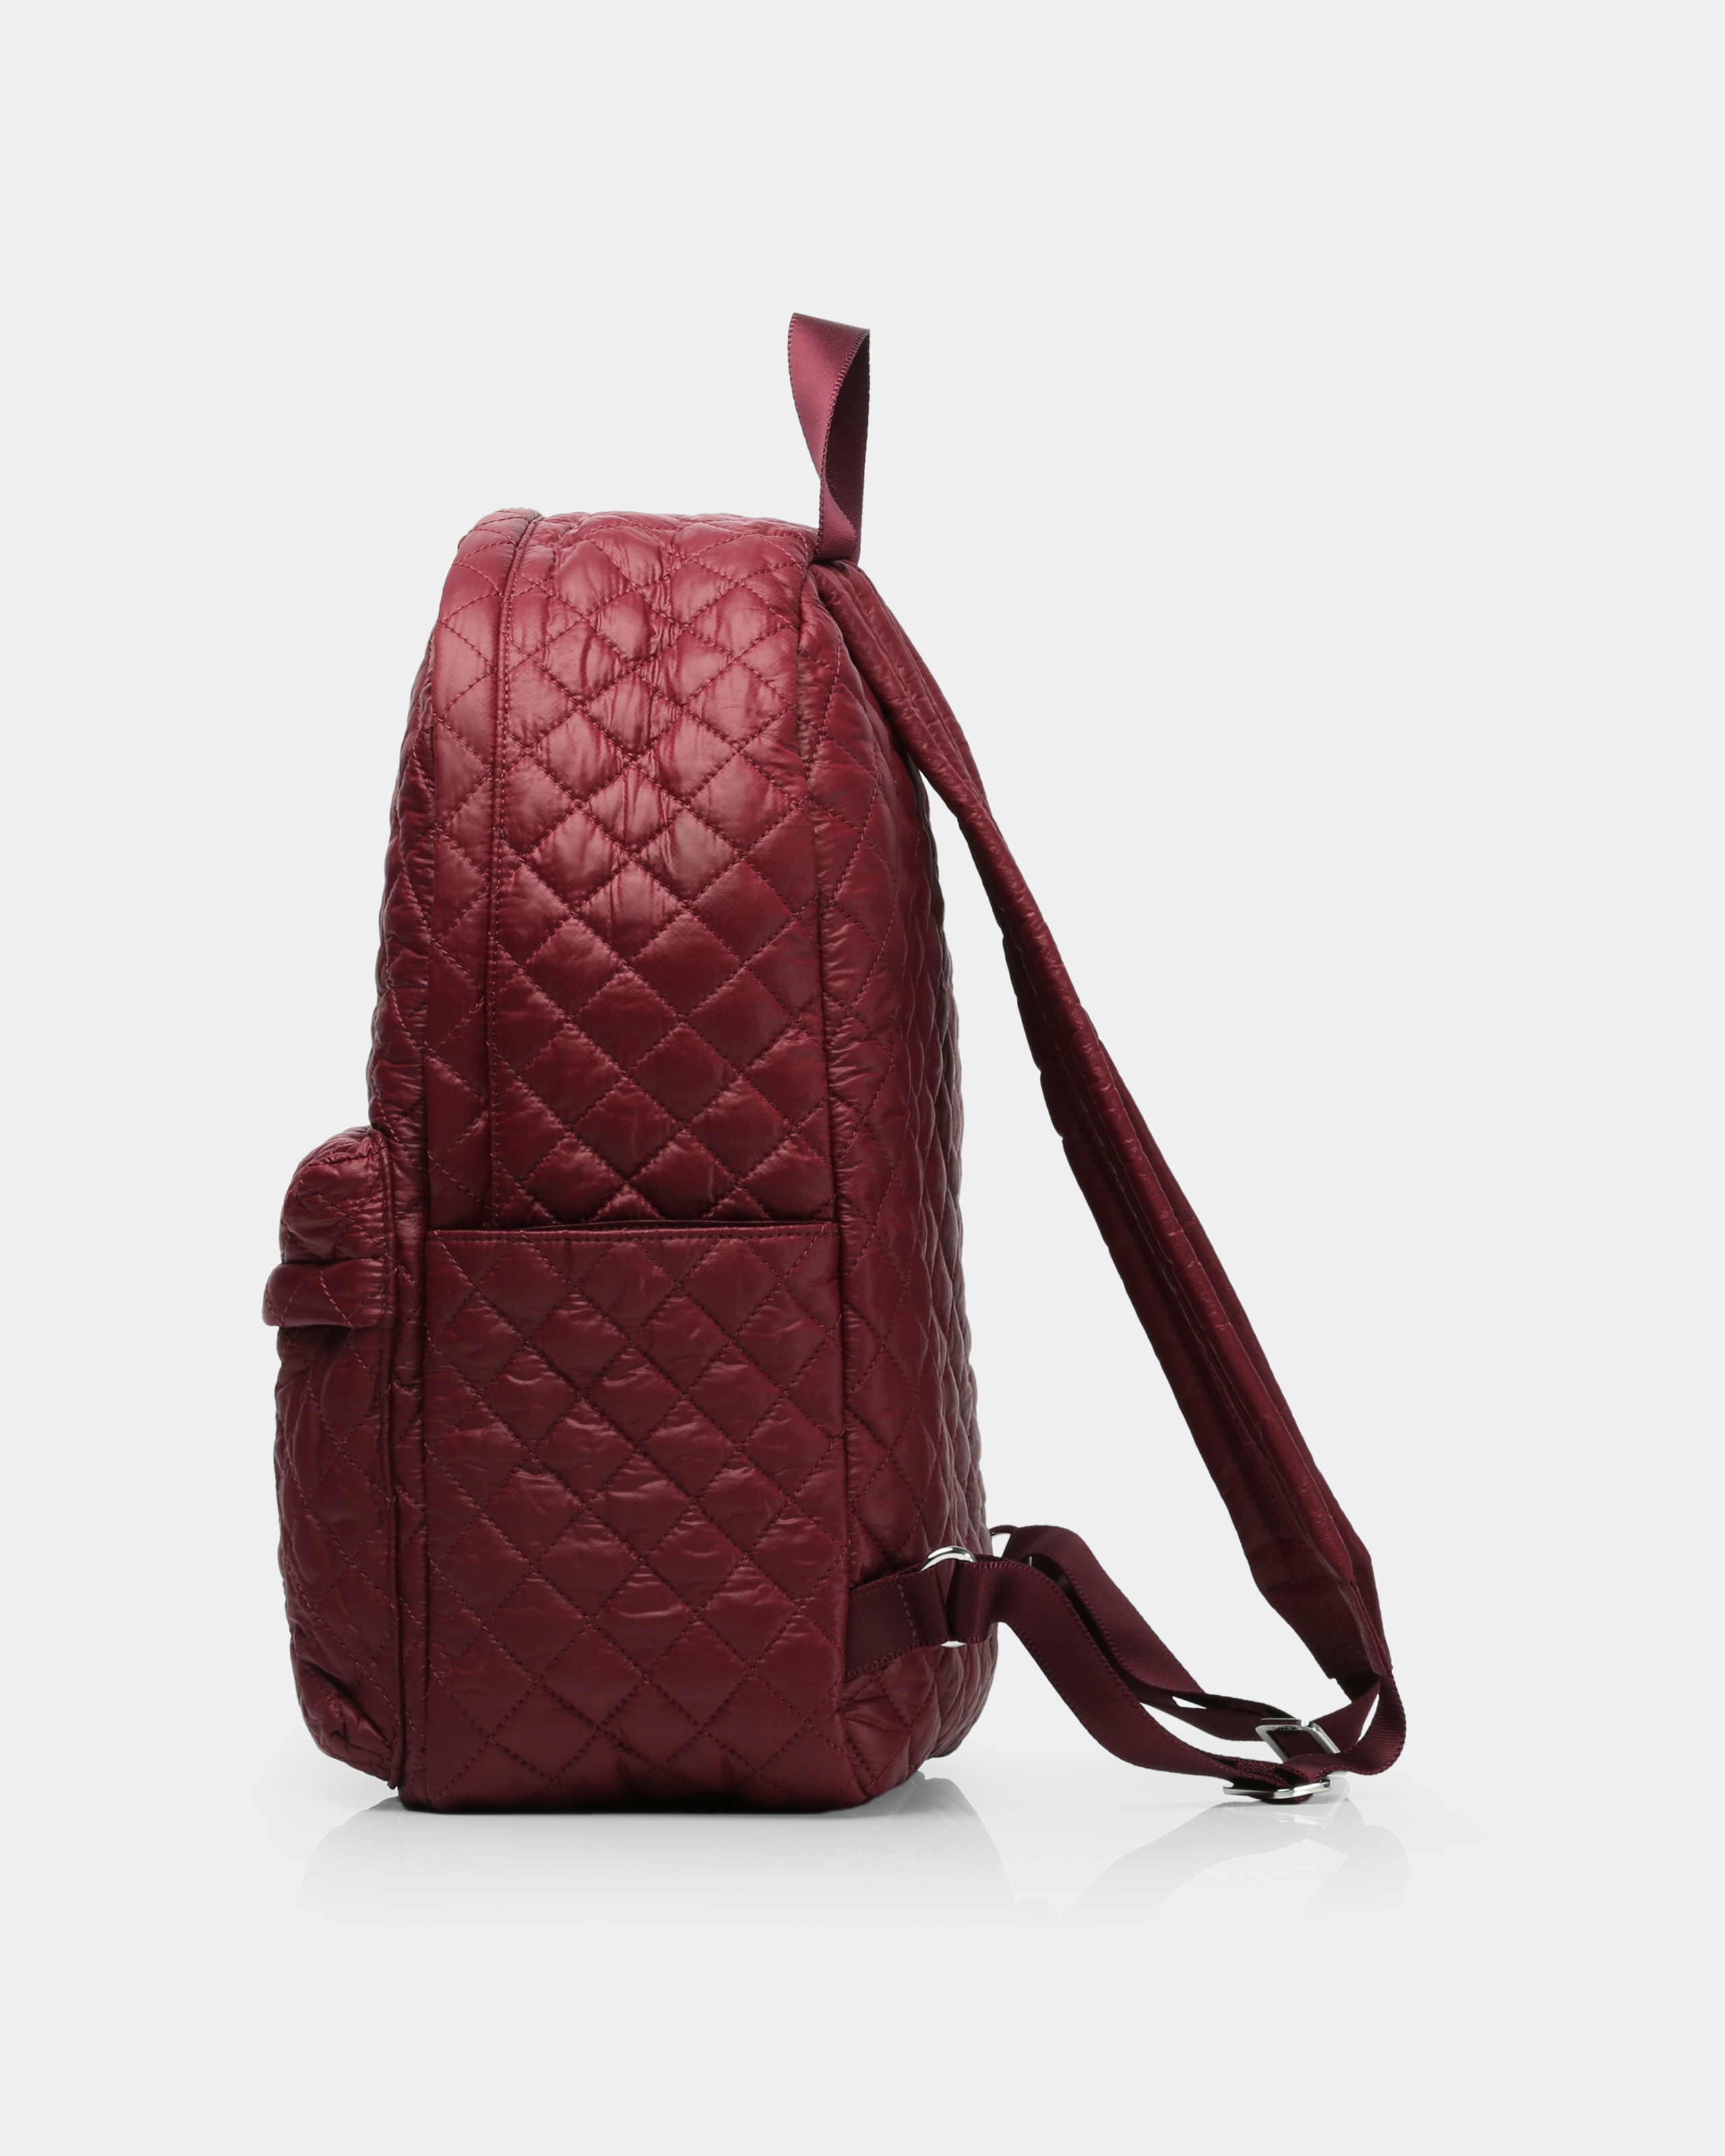 Medium Metro Backpack - Maroon Quilted Oxford (7661315) in color Maroon